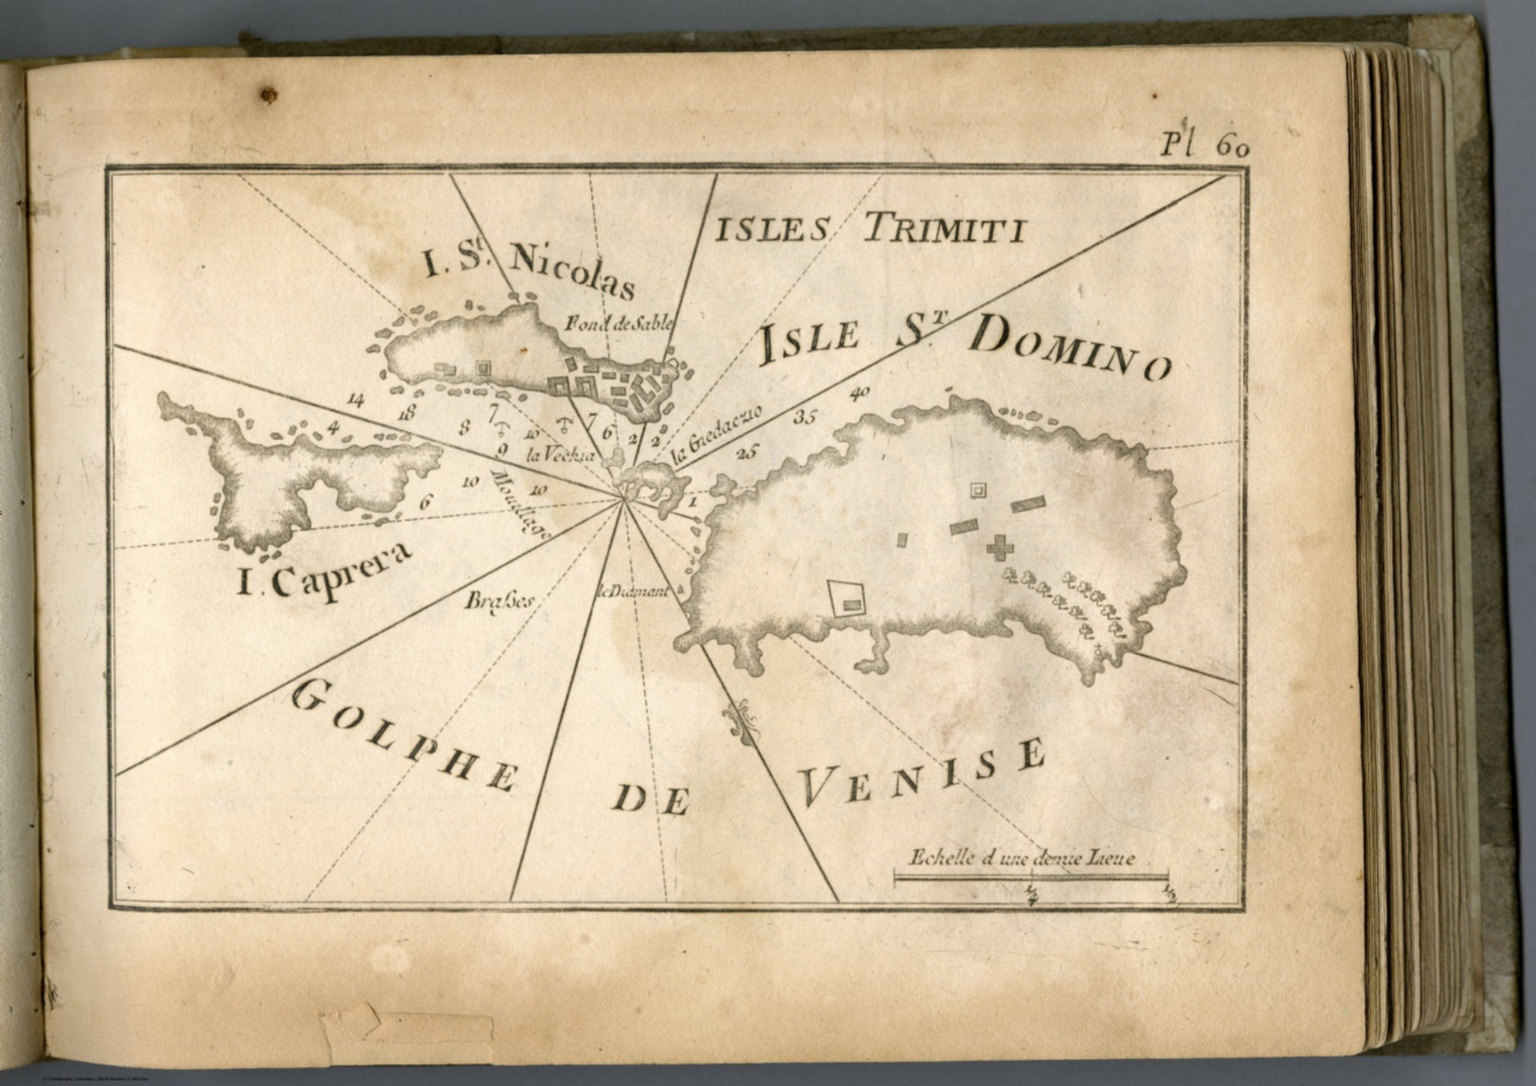 Pl 60 Tremiti Islands Italy David Rumsey Historical Map Collection